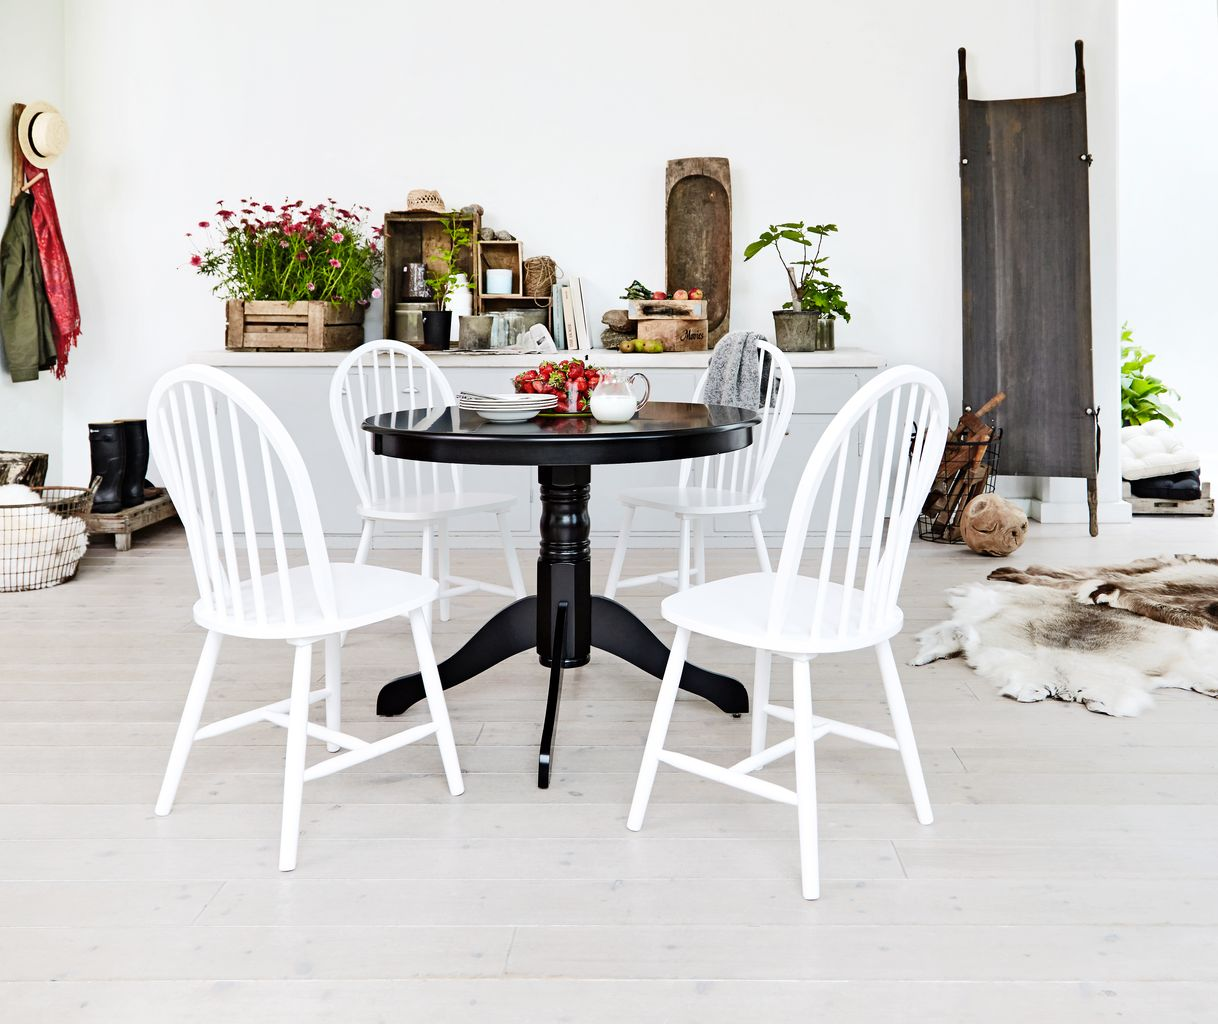 Dining Chair ASKEBY White